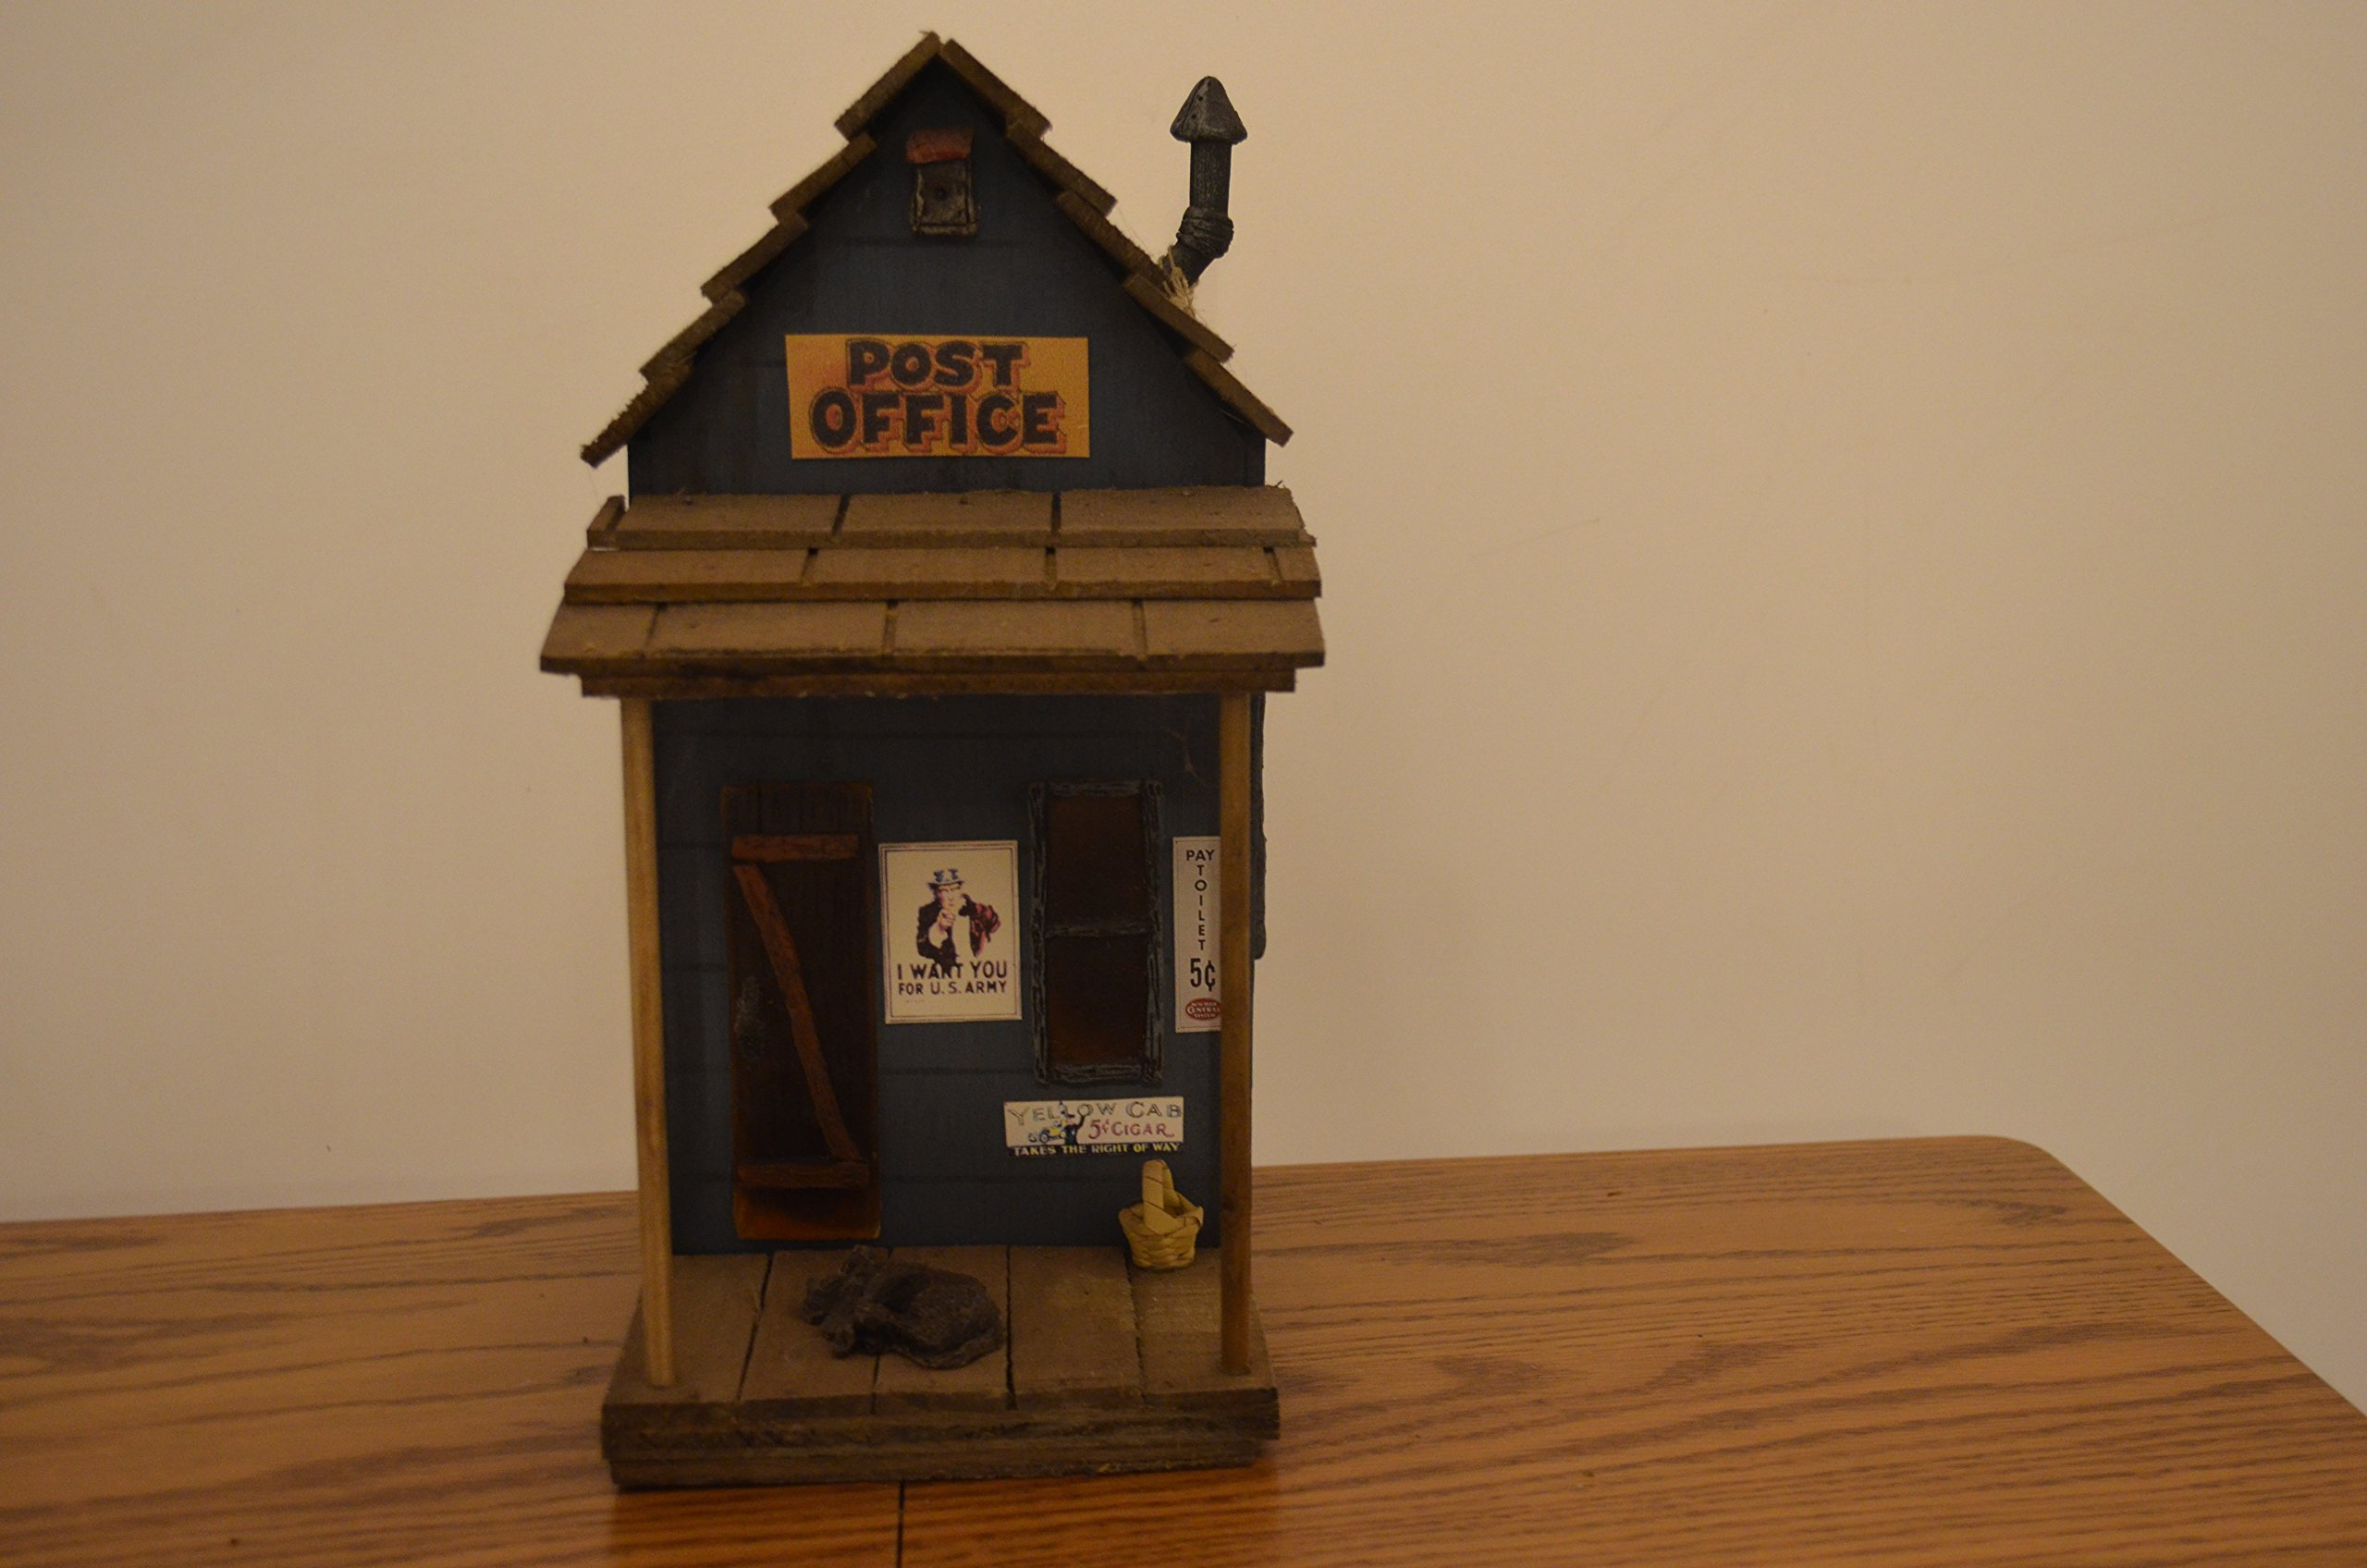 Birdhouse (with Entrance/ Exit Hole in the Front and Access Hole in the Back for Detachable Light to Glow Through the Windows and Doors) Resembling a Wooden Blue Post Office Decorated with Windows, a Door, a Dog, Basket, and Signs. Measurements Are 9 1/4